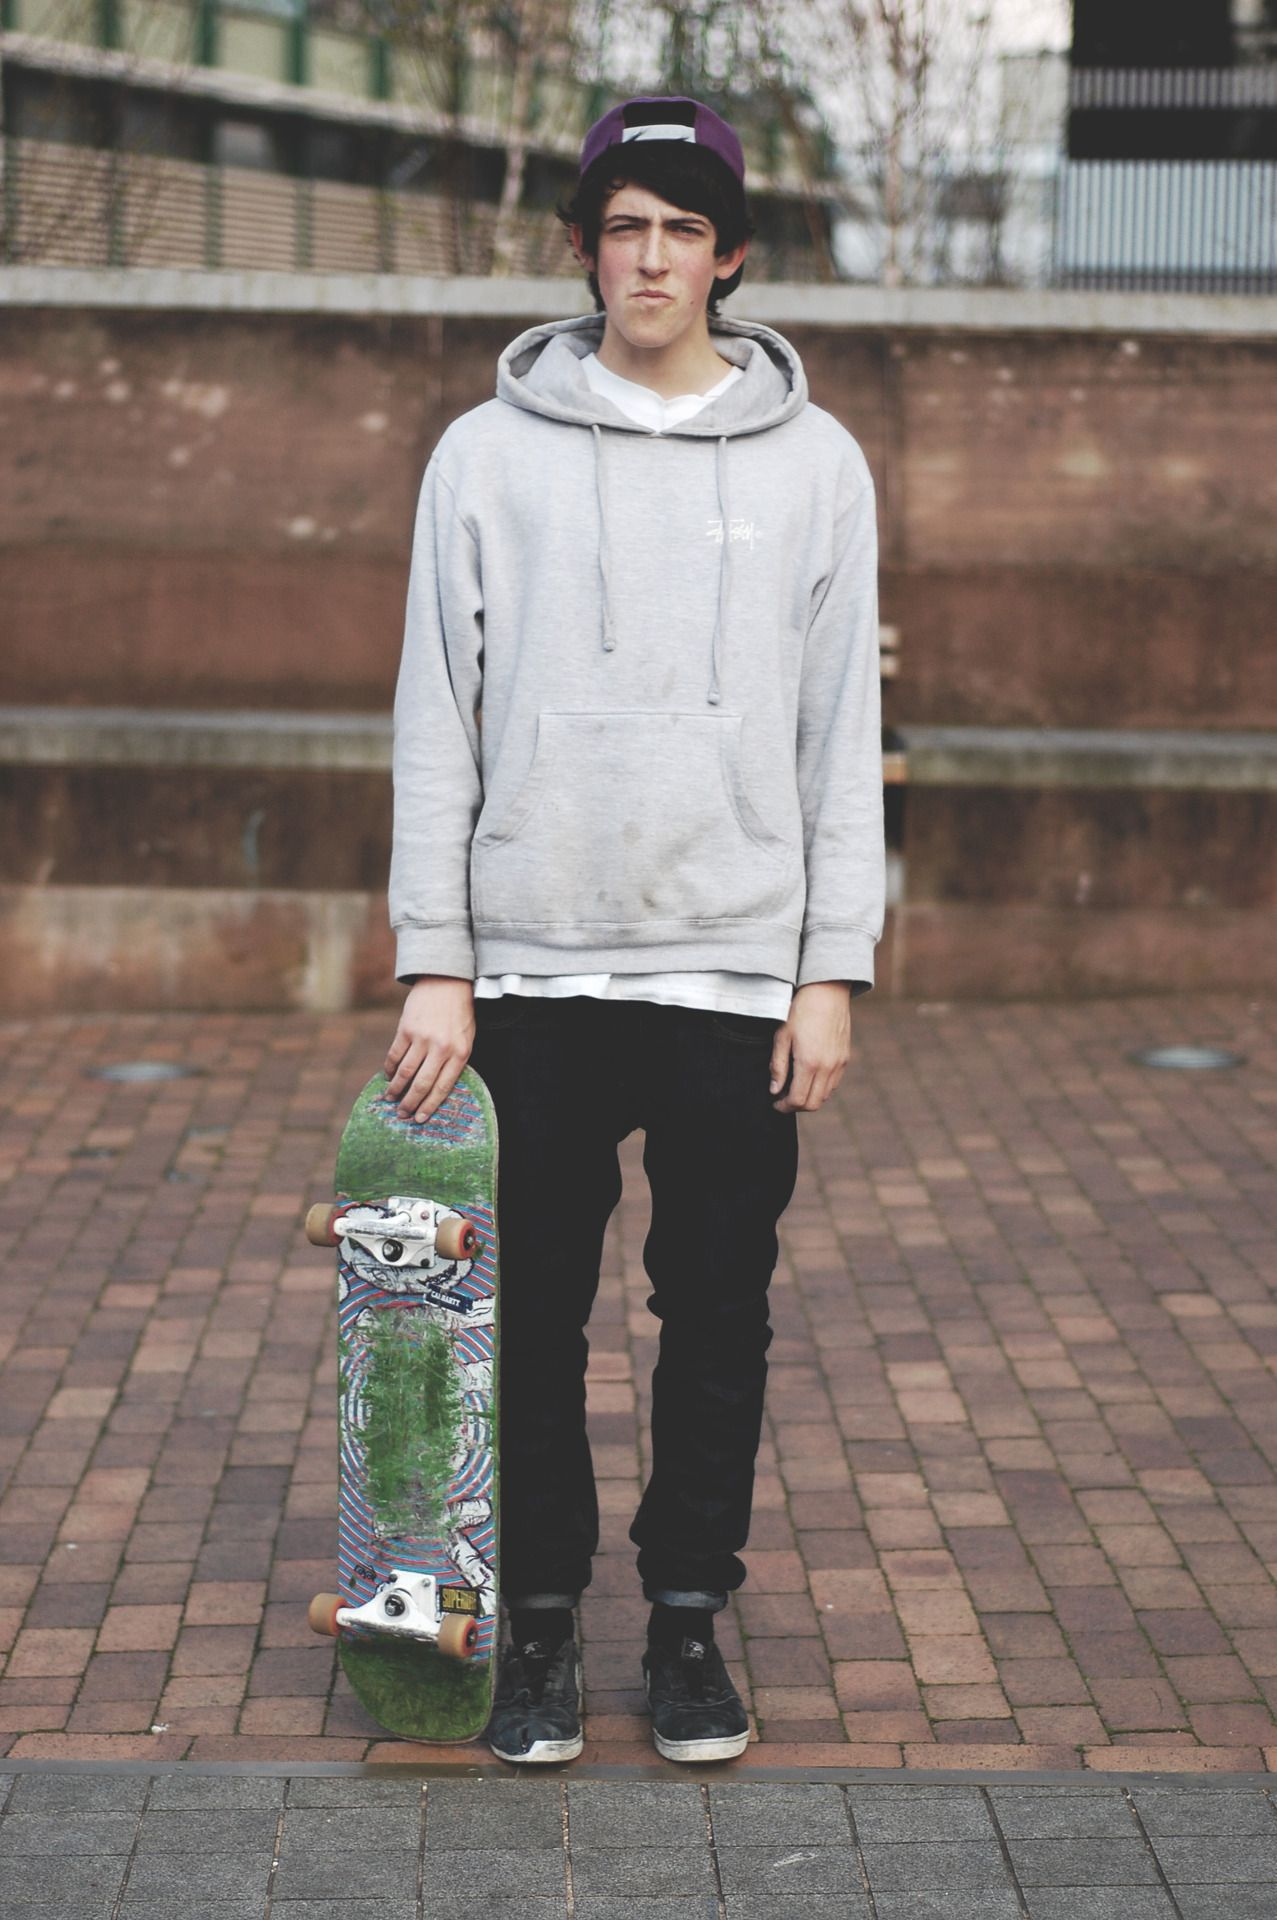 Men's SS13 Trend Look: Skater Boy advise